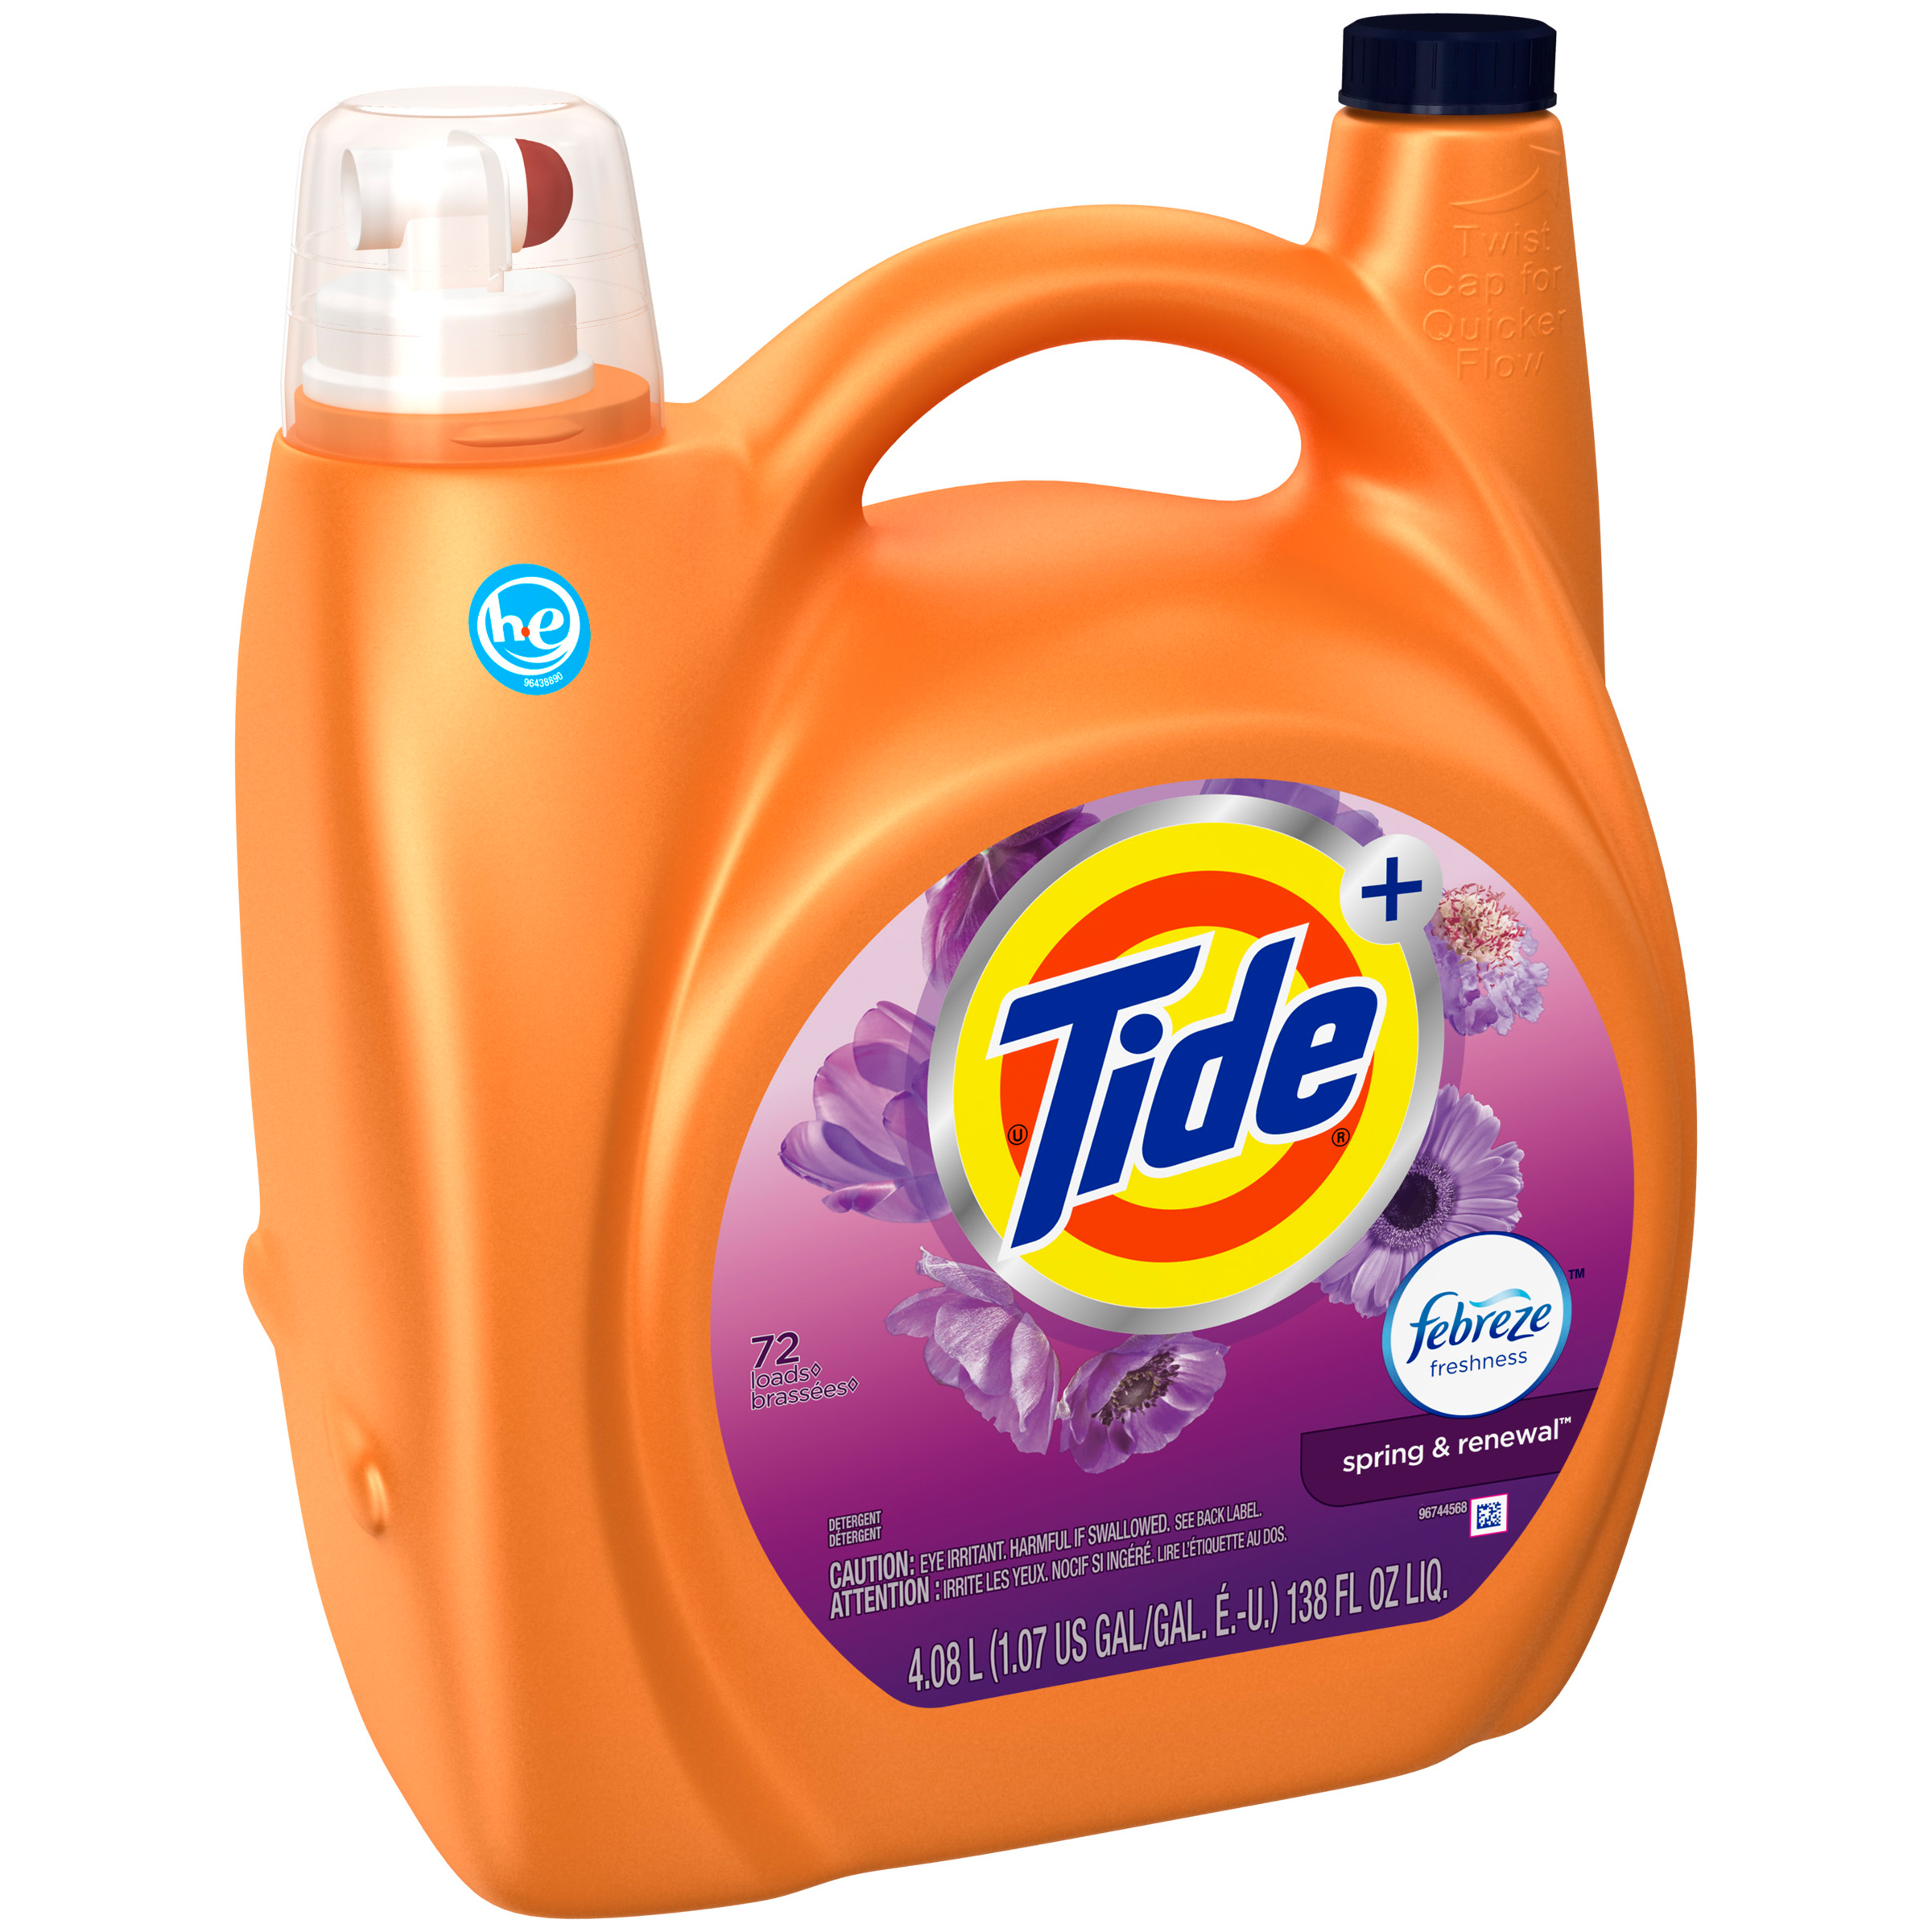 Tide Febreze Freshness Spring And Renewal Scent Turbo Clean Liquid Laundry Detergent